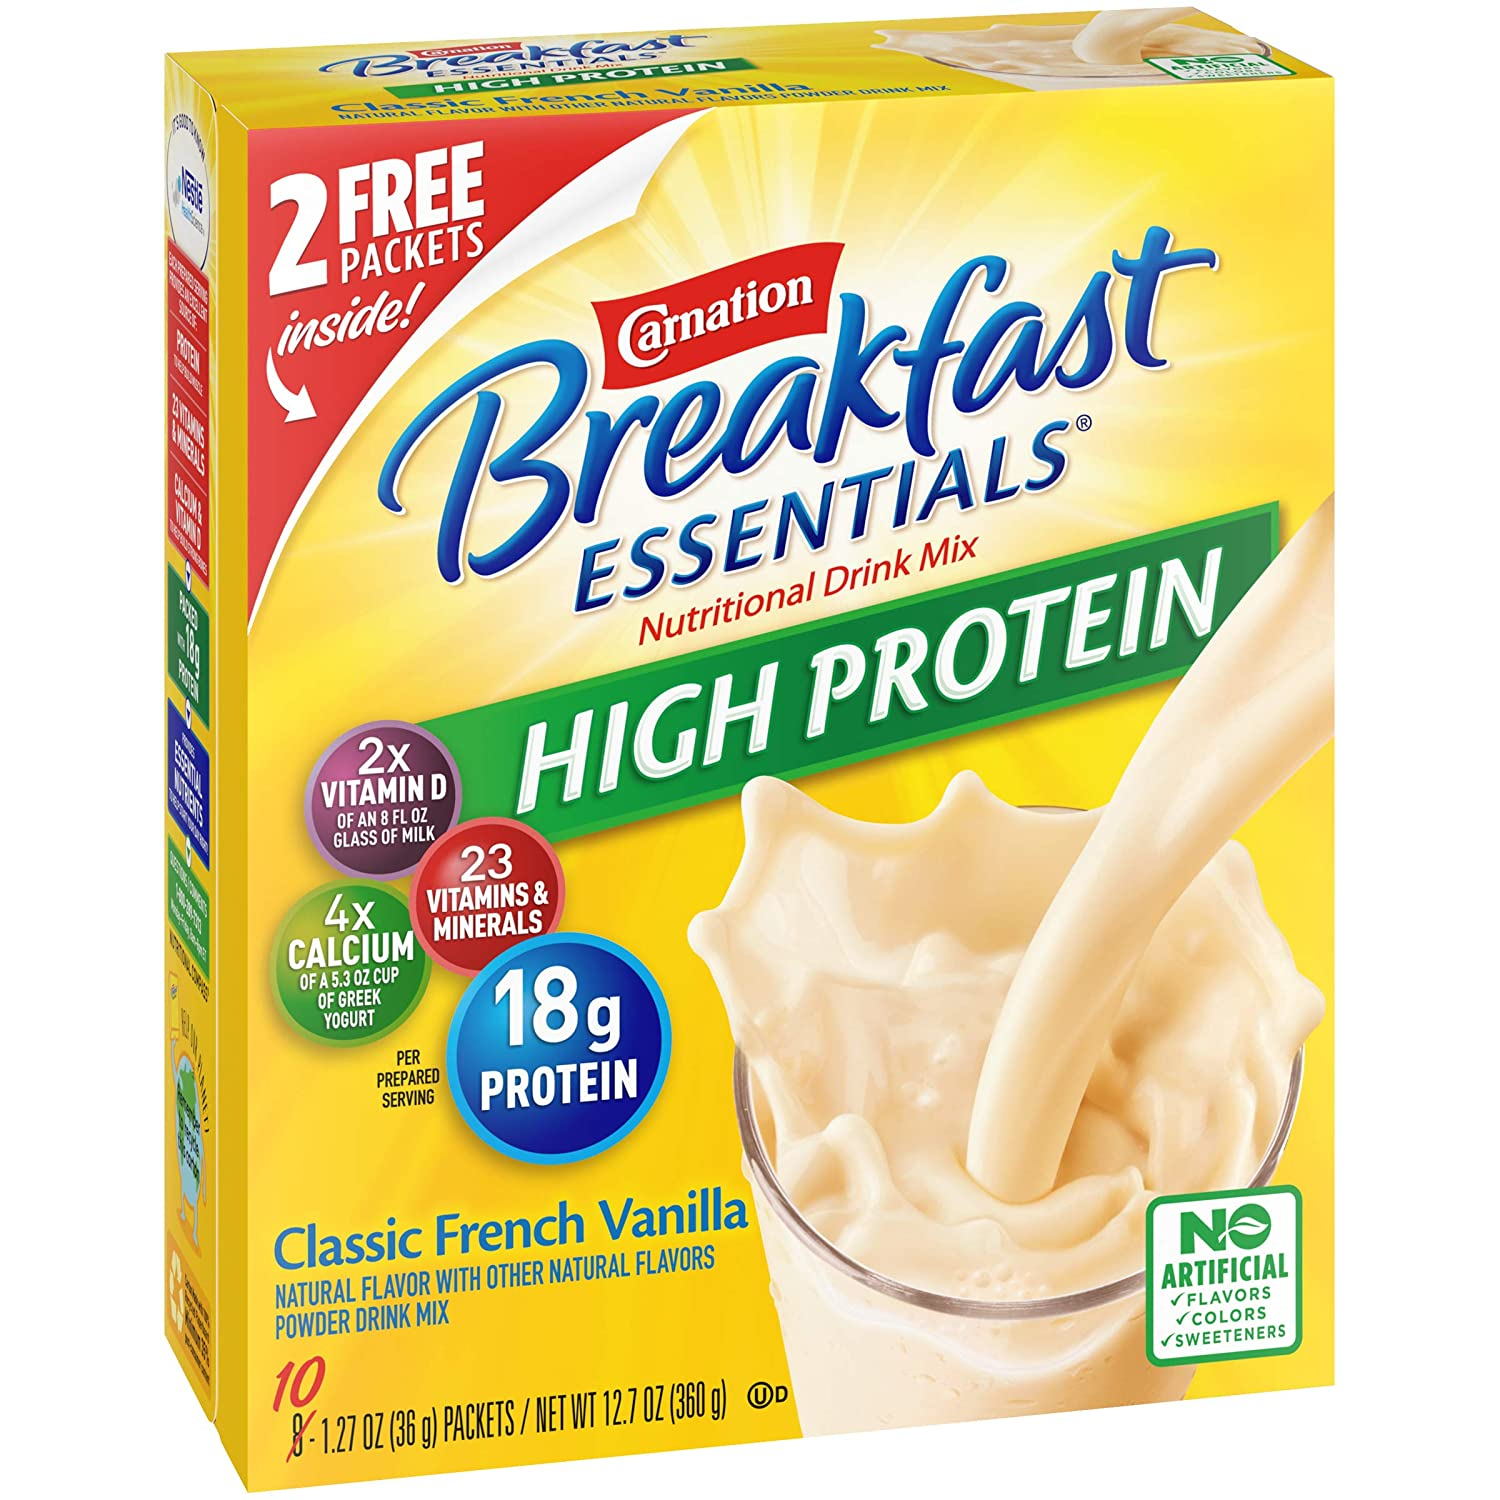 Carnation Breakfast Essentials 60-Count 1.27oz High Protein Powder Drink Mix $24 at Amazon Coupon